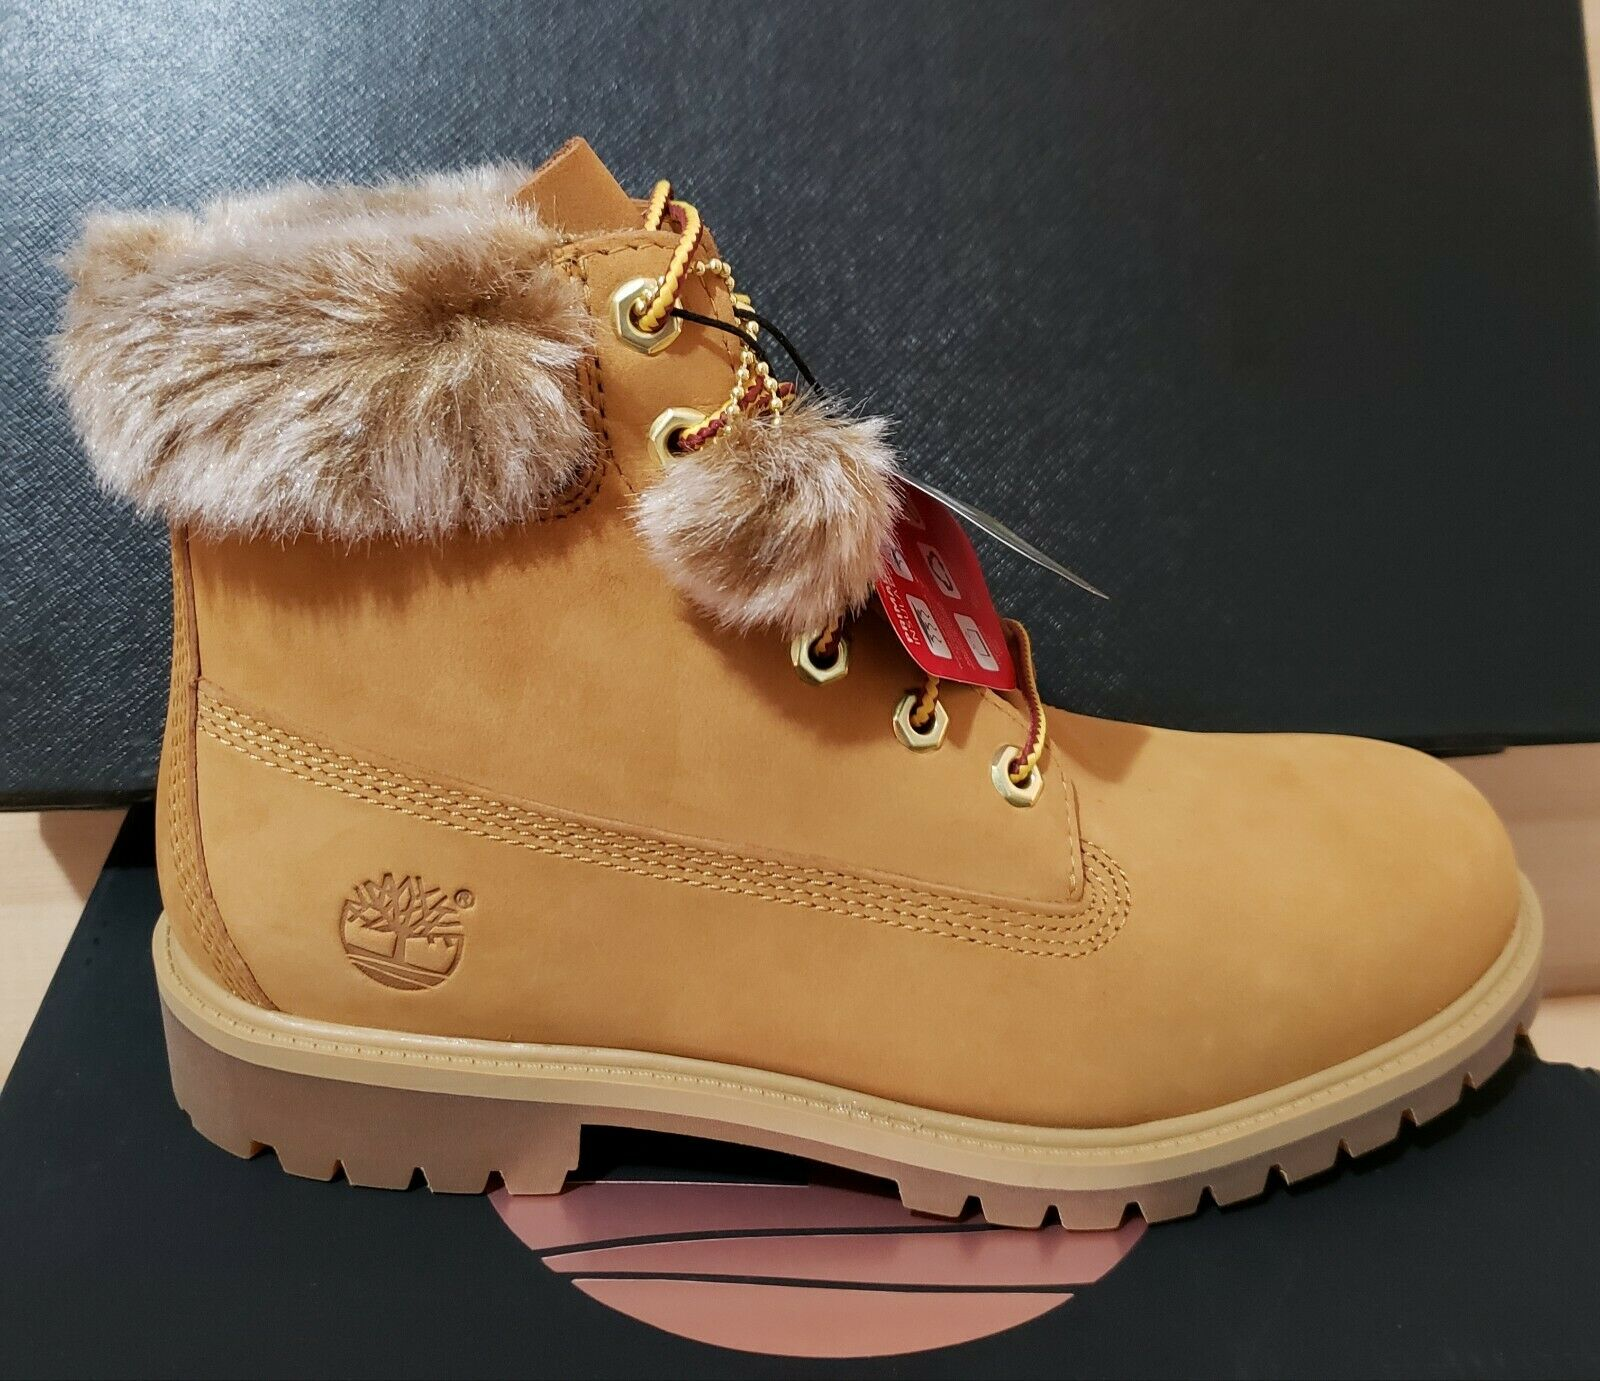 TIMBERLAND 6 inch Waterproof Boots With Fur Trim Sz Womens 8.5 Black